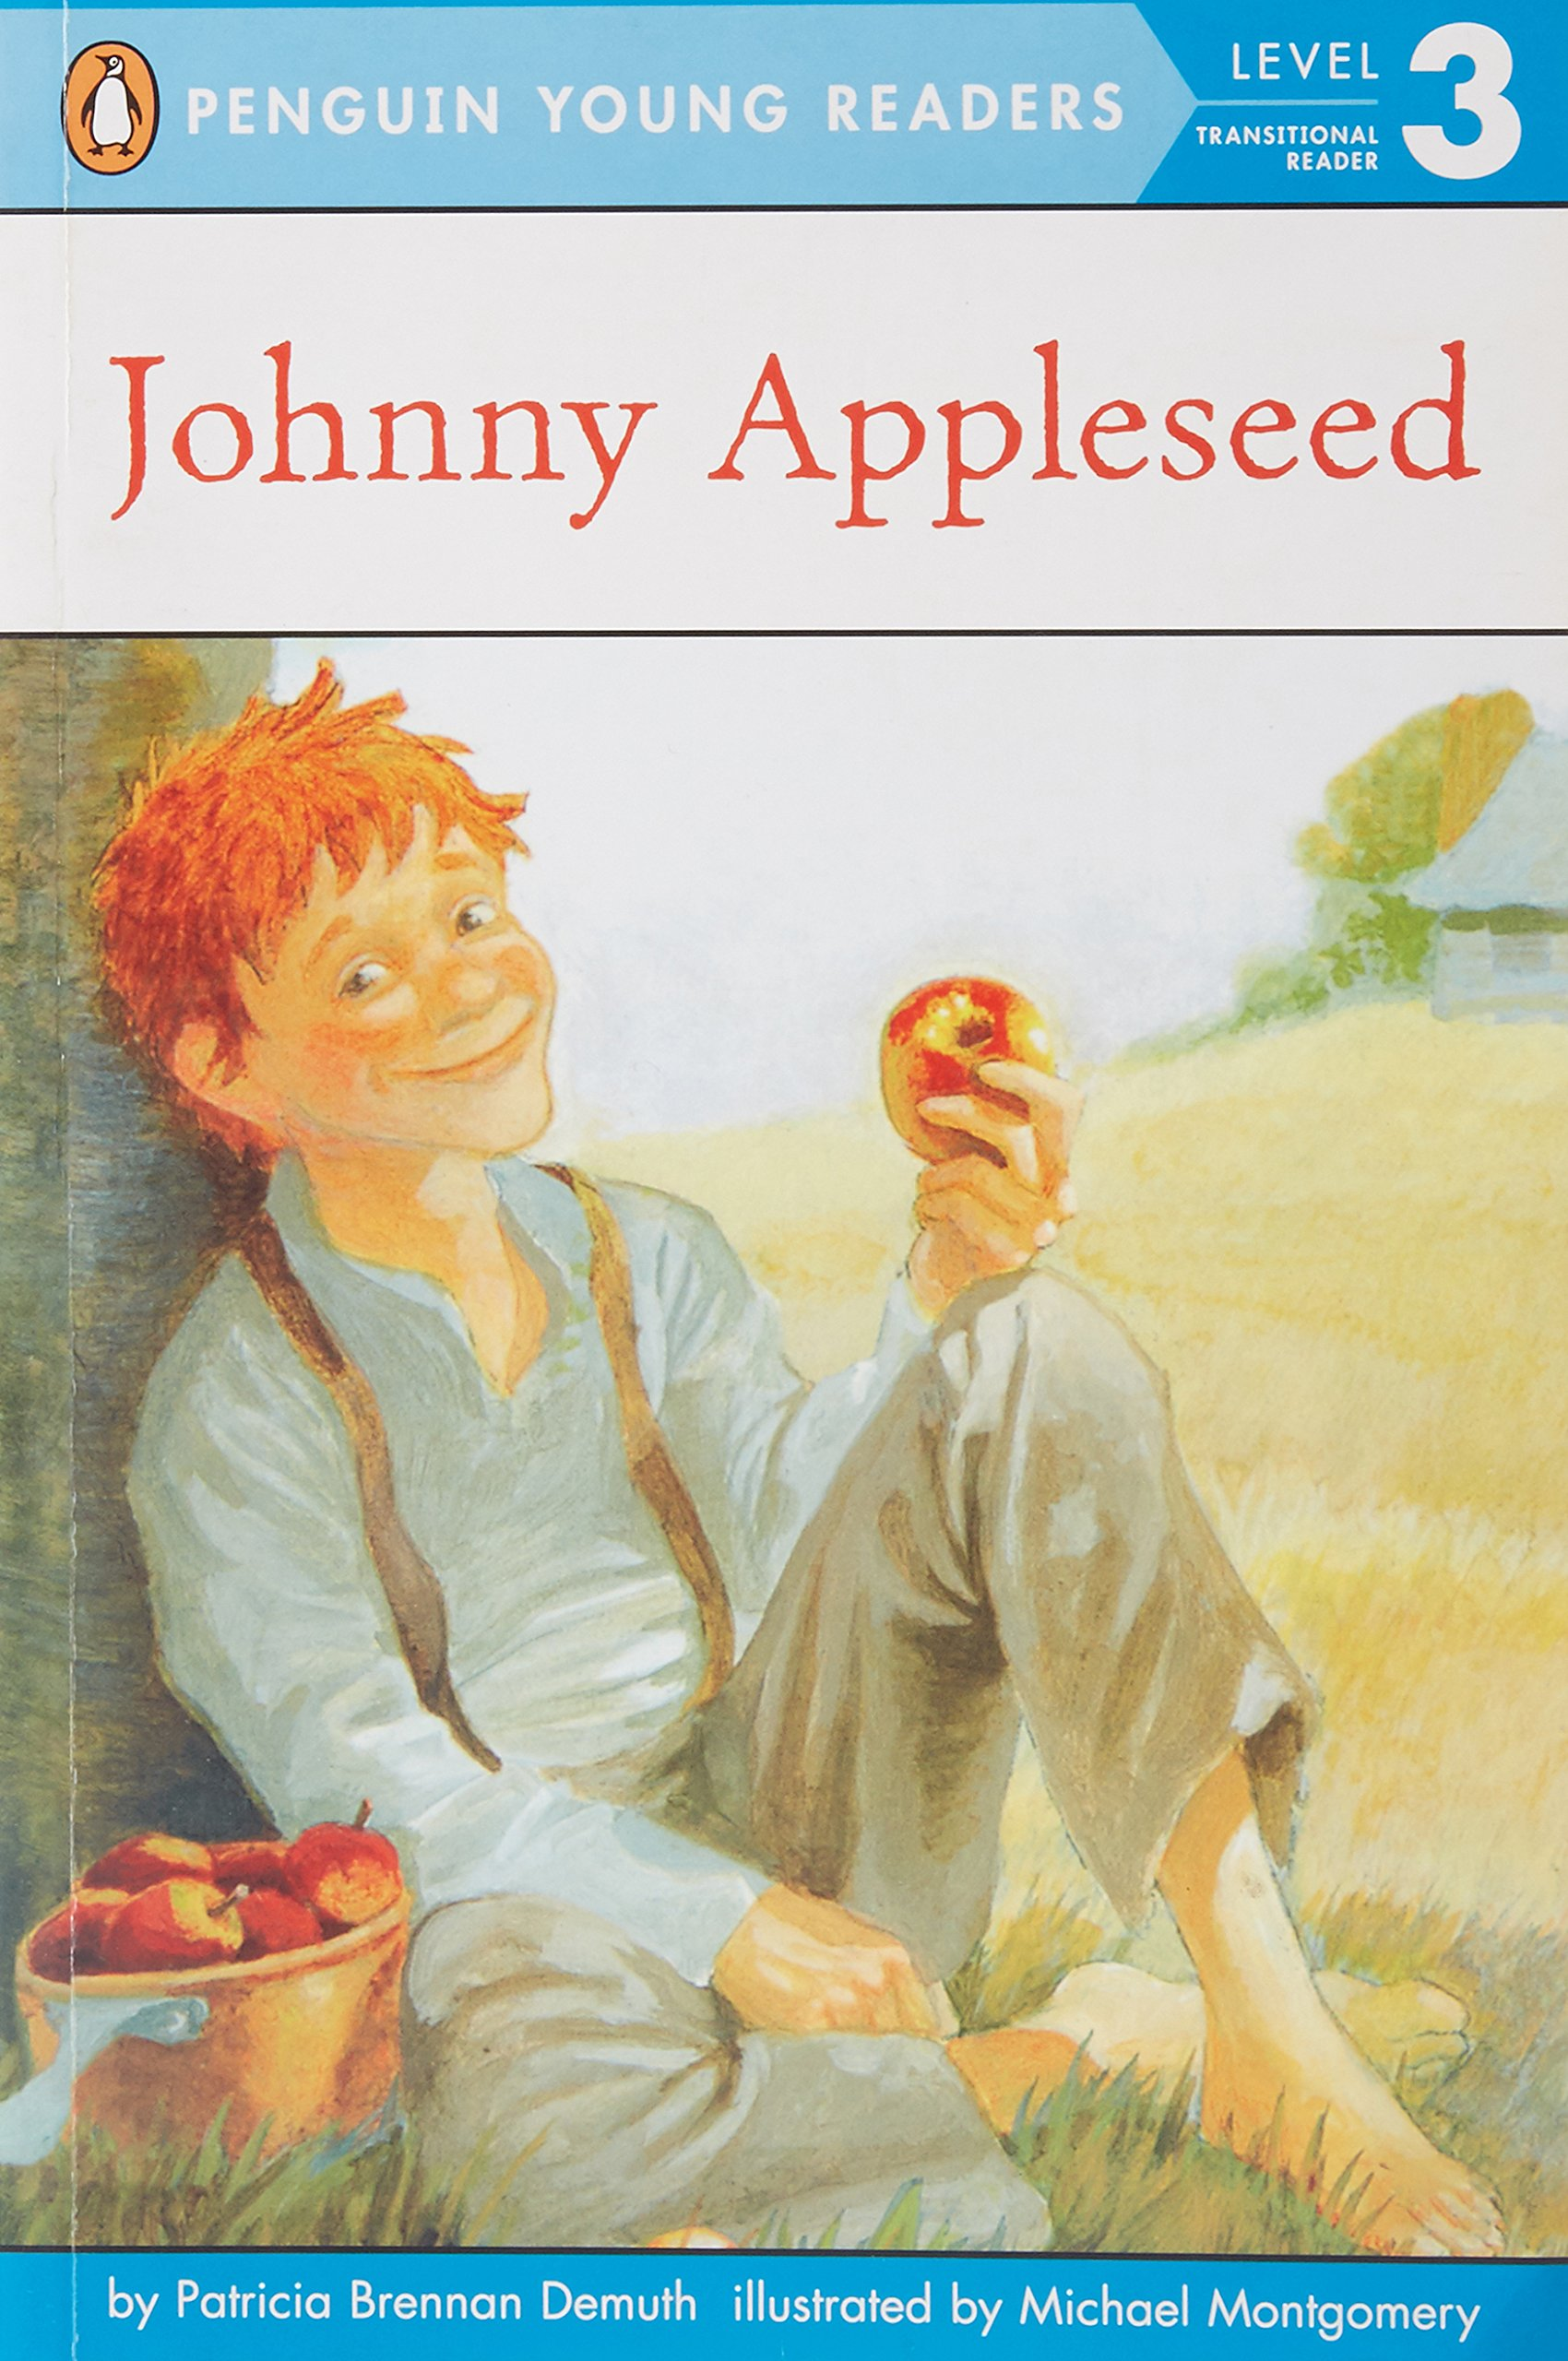 Amazon: Johnny Appleseed (paperback) 1996c Grossrt & Dunlap (penguin  Young Readers, Level 3) (9780448411309): Patricia Brennan Demuth, Michael